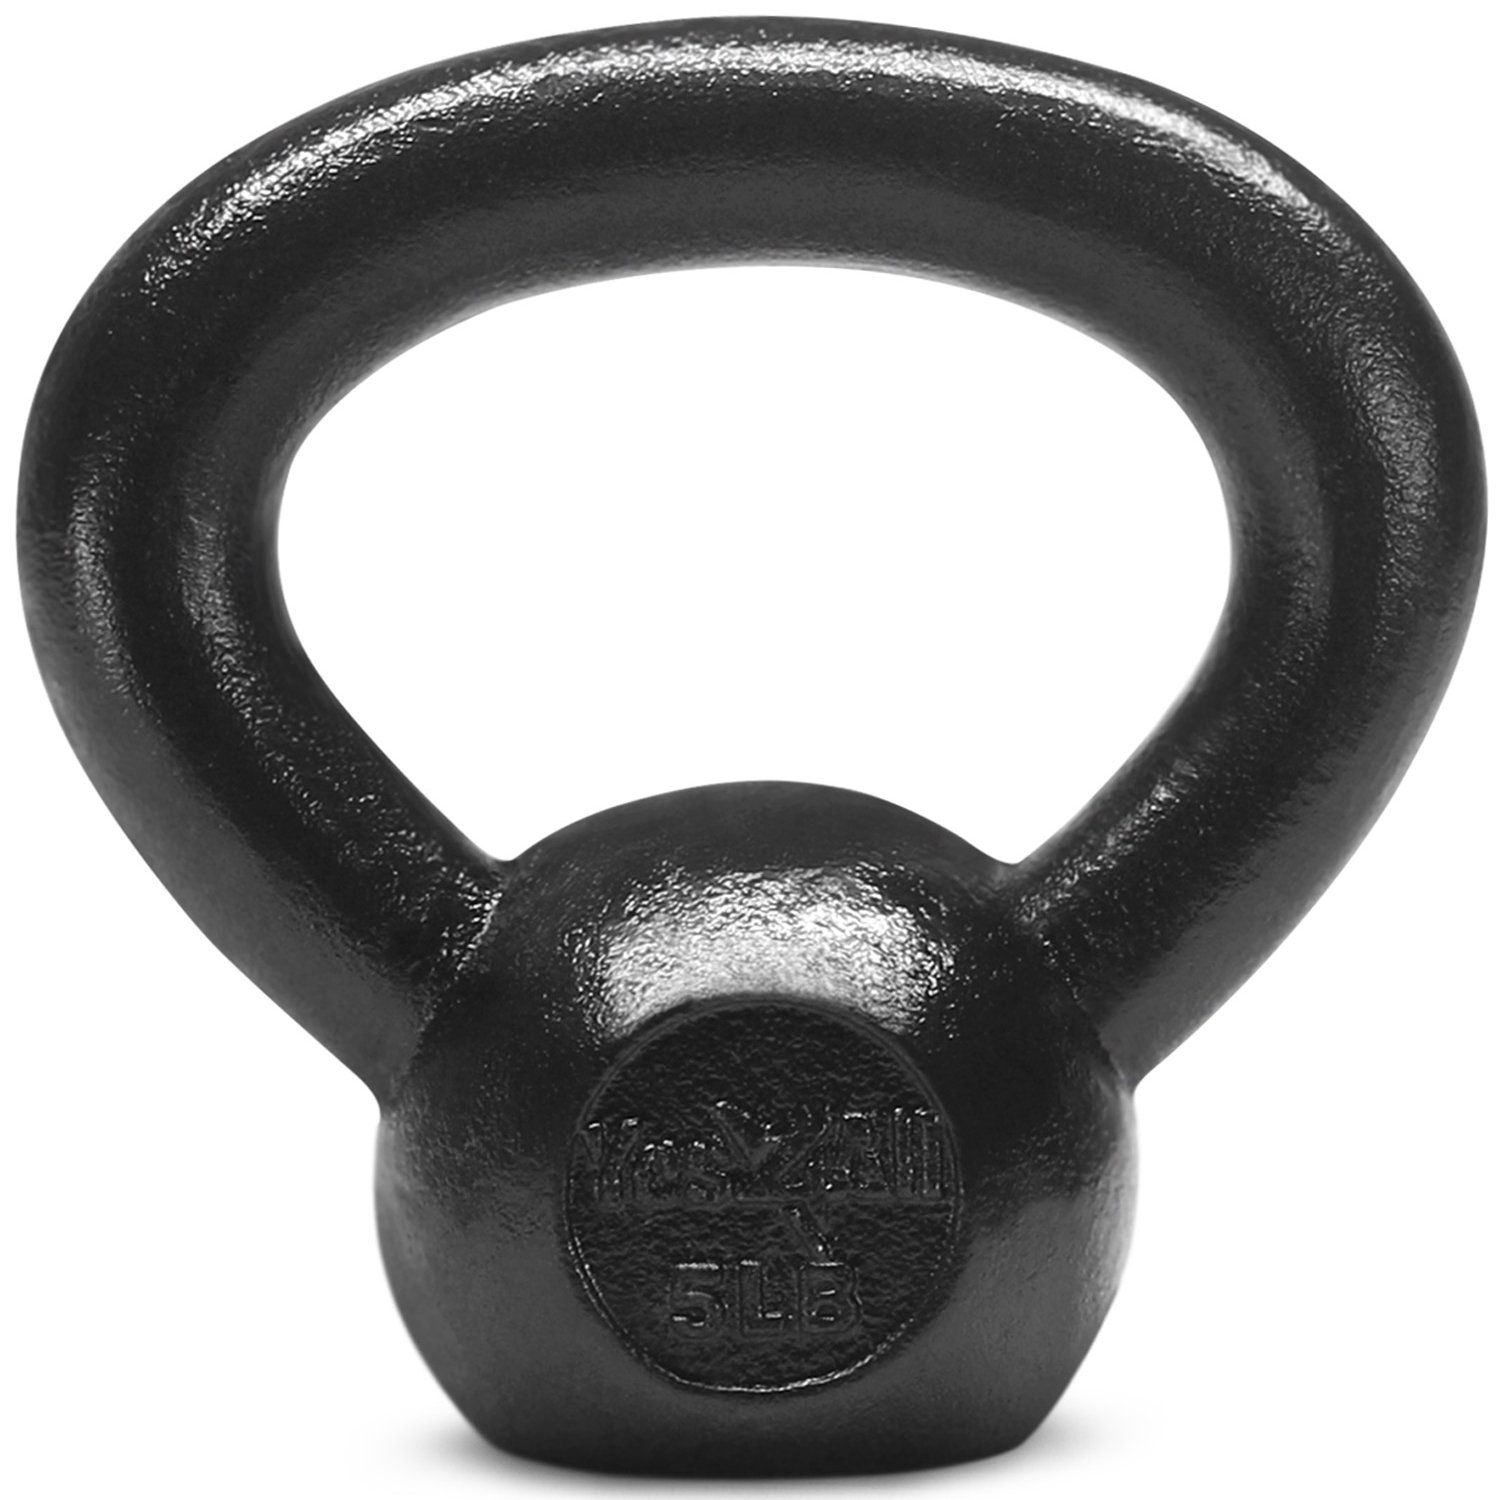 Yes4All Solid Cast Iron Kettlebell Weights Set – Great for Full Body Workout and Strength Training – Kettlebell 5 lbs (Black)